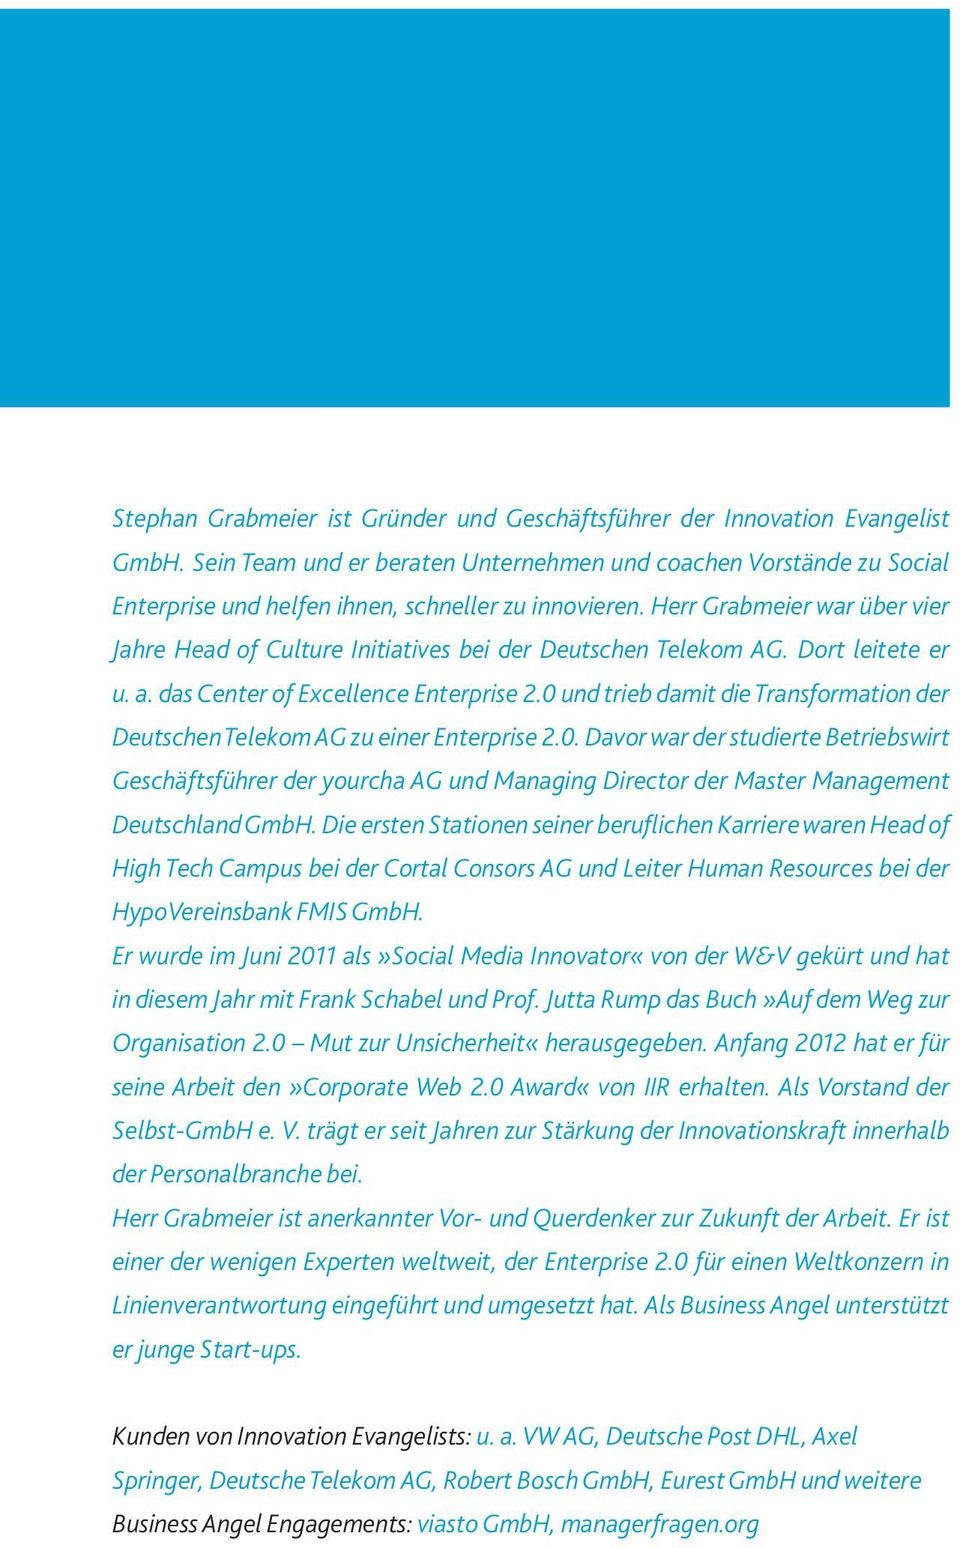 Herr Grabmeier war über vier Jahre Head of Culture Initiatives bei der Deutschen Telekom AG. Dort leitete er u. a. das Center of Excellence Enterprise 2.